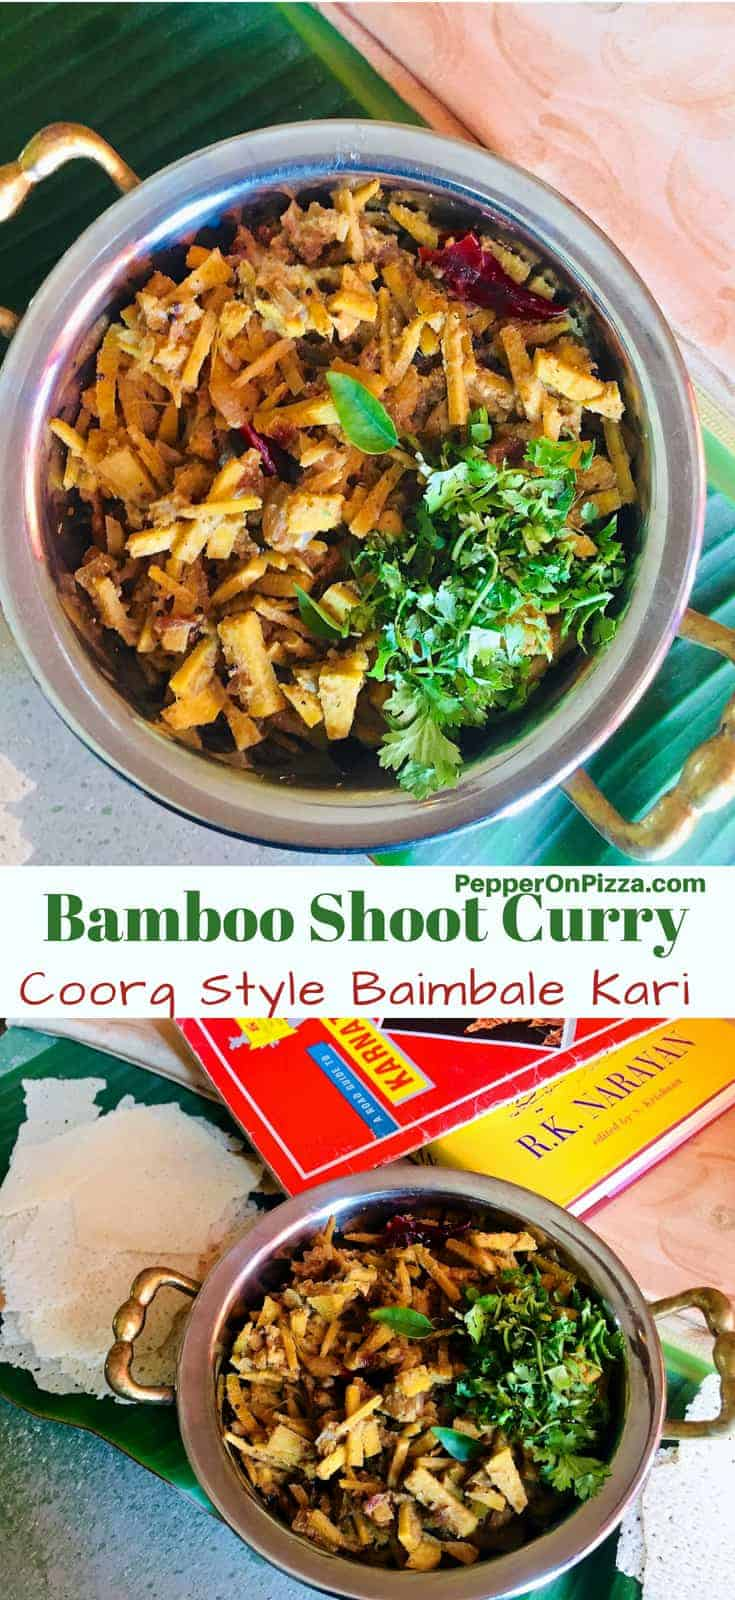 Bamboo Shoot Curry. A Coorg Style Kalale or Baimbale Kari made from fresh bamboo shoots that are fermented and then cooked with onion, garlic, tamarind and coconut paste The instructions include steps for preparing the fresh Bamboo shoots before cooking.